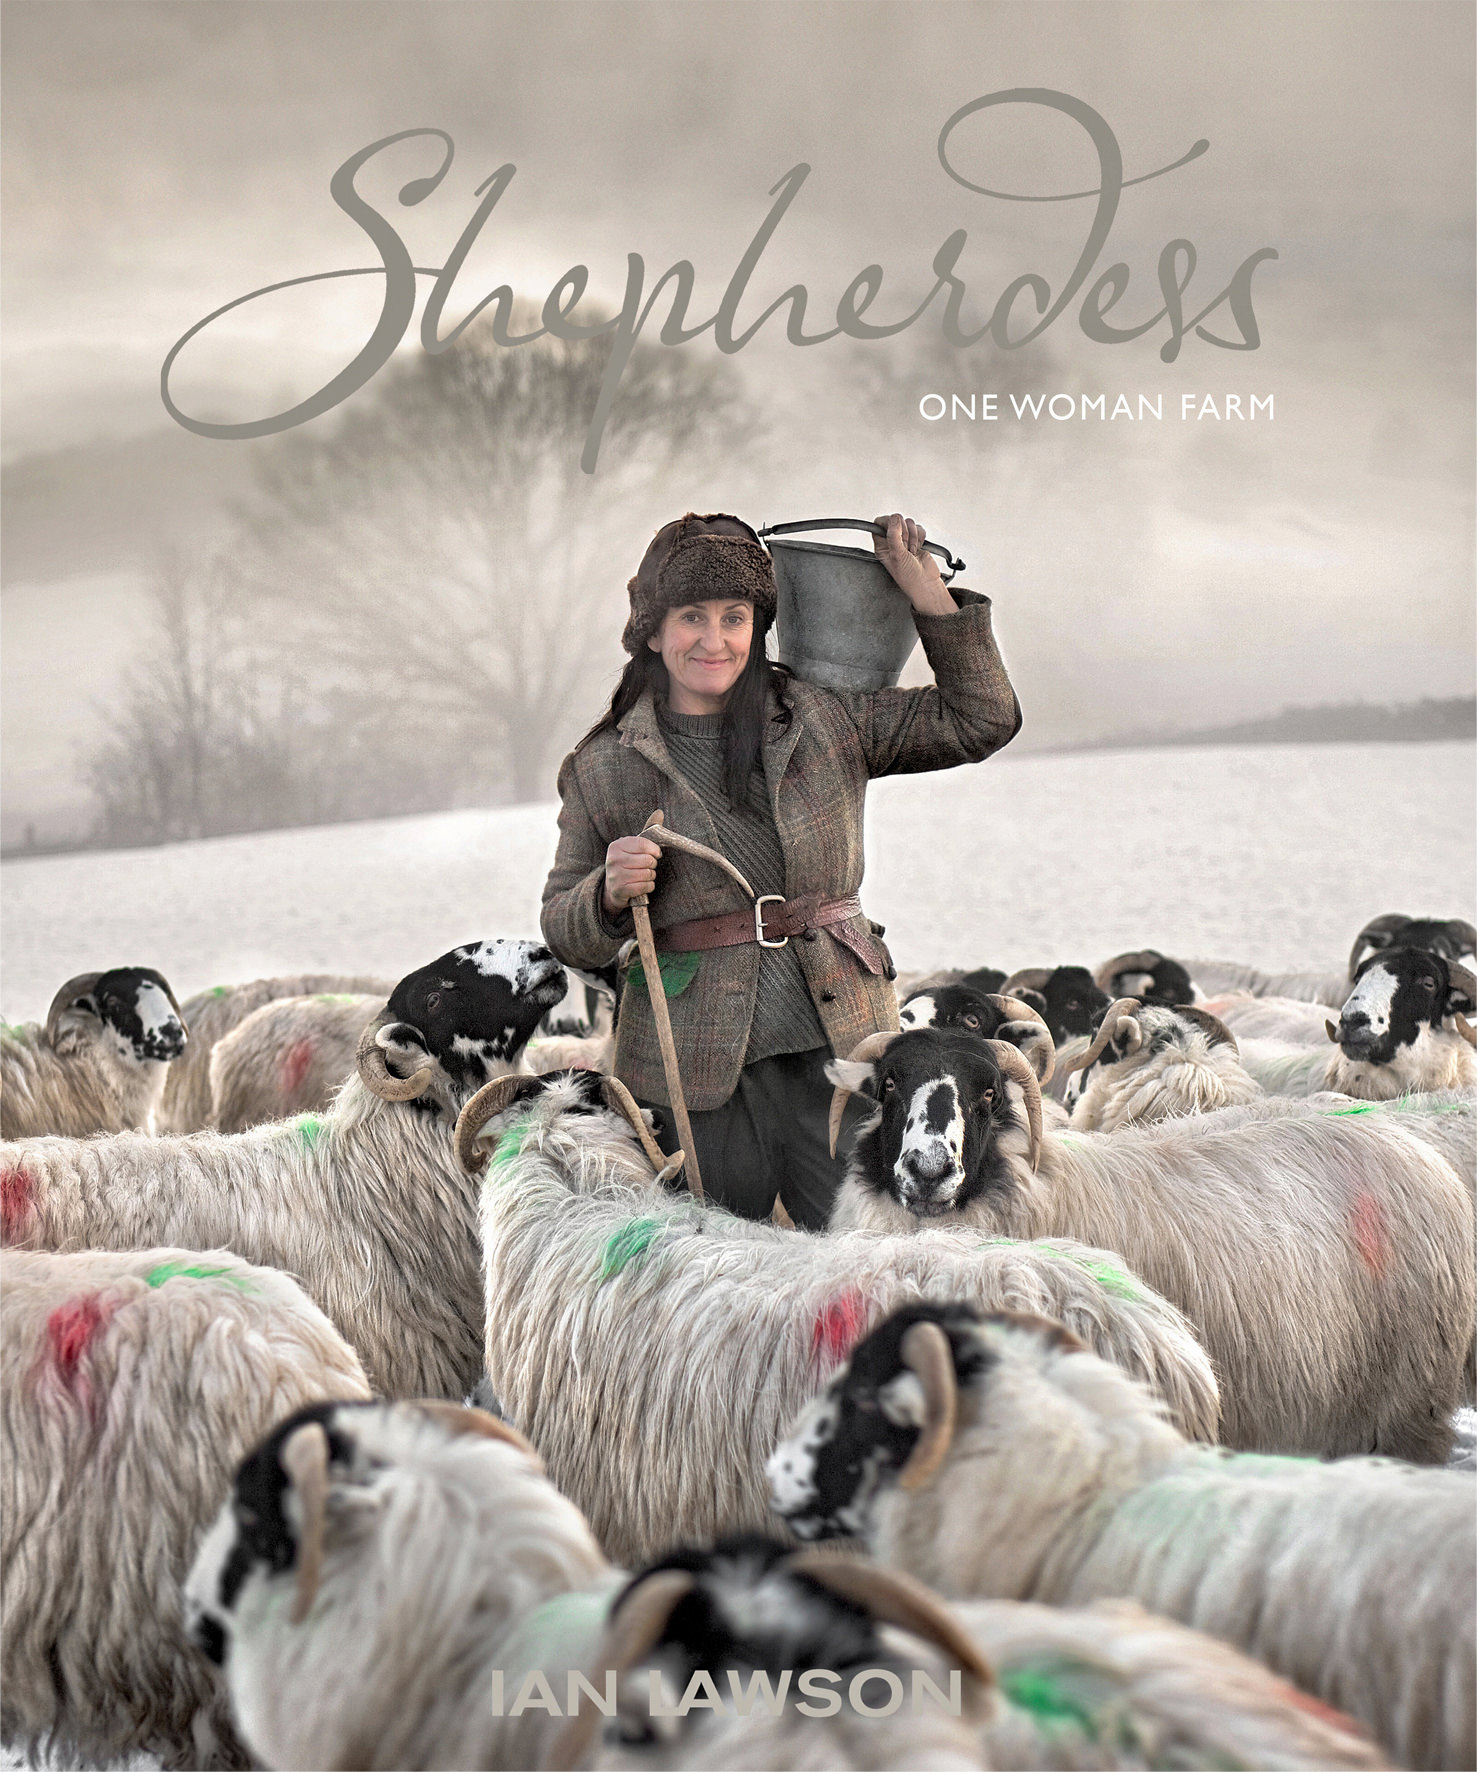 Ian Lawson - shepherdess Book